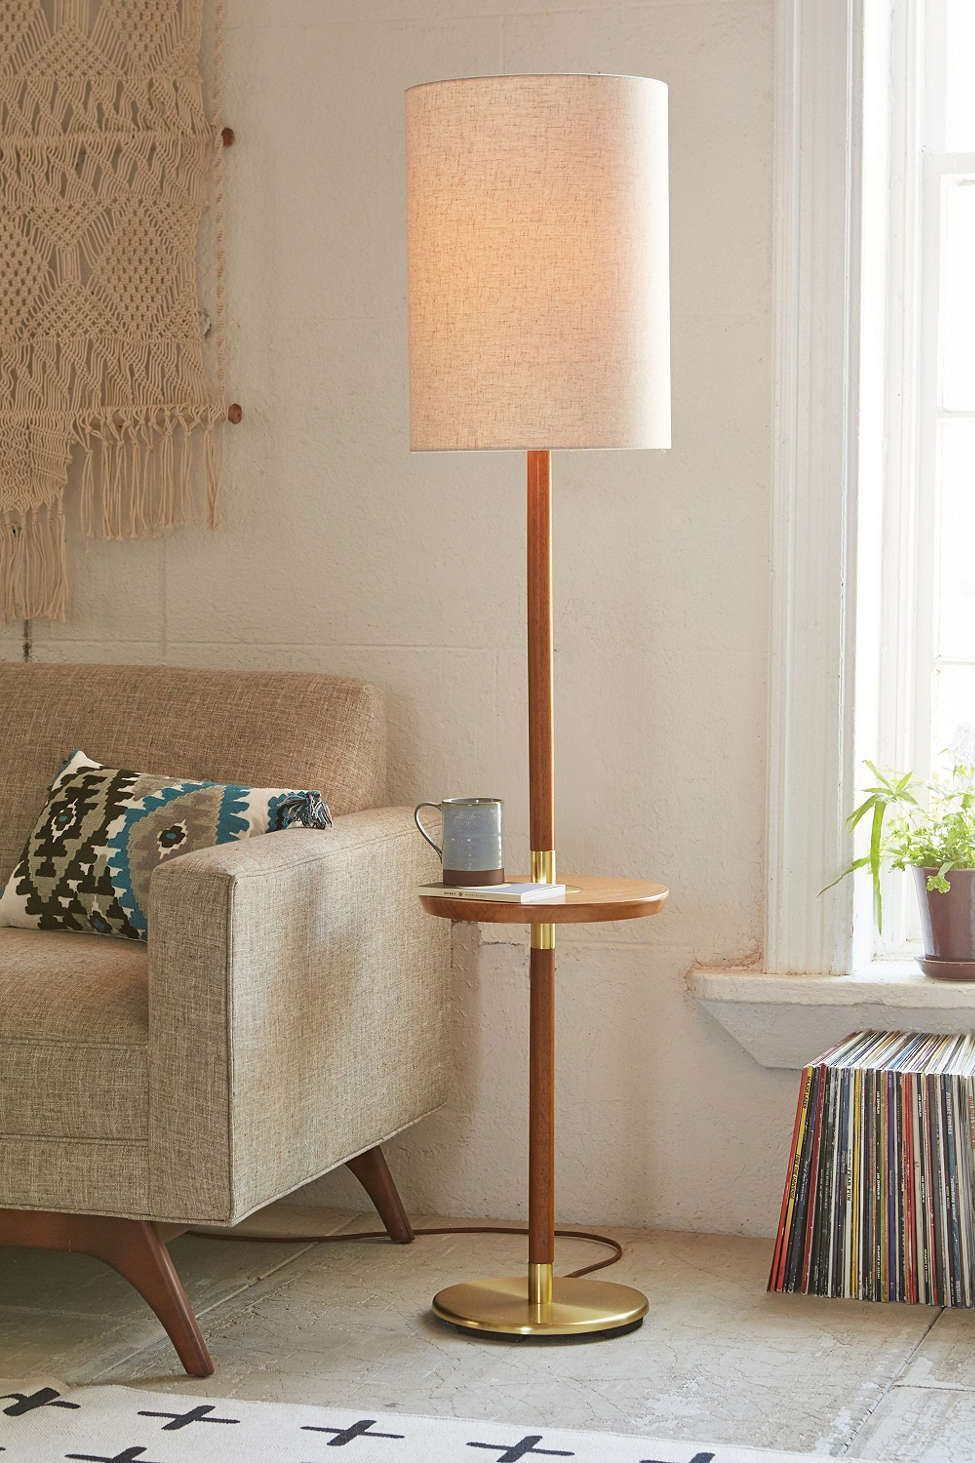 Top 5 Most Iconic Floor Lamps For Your Interior Design